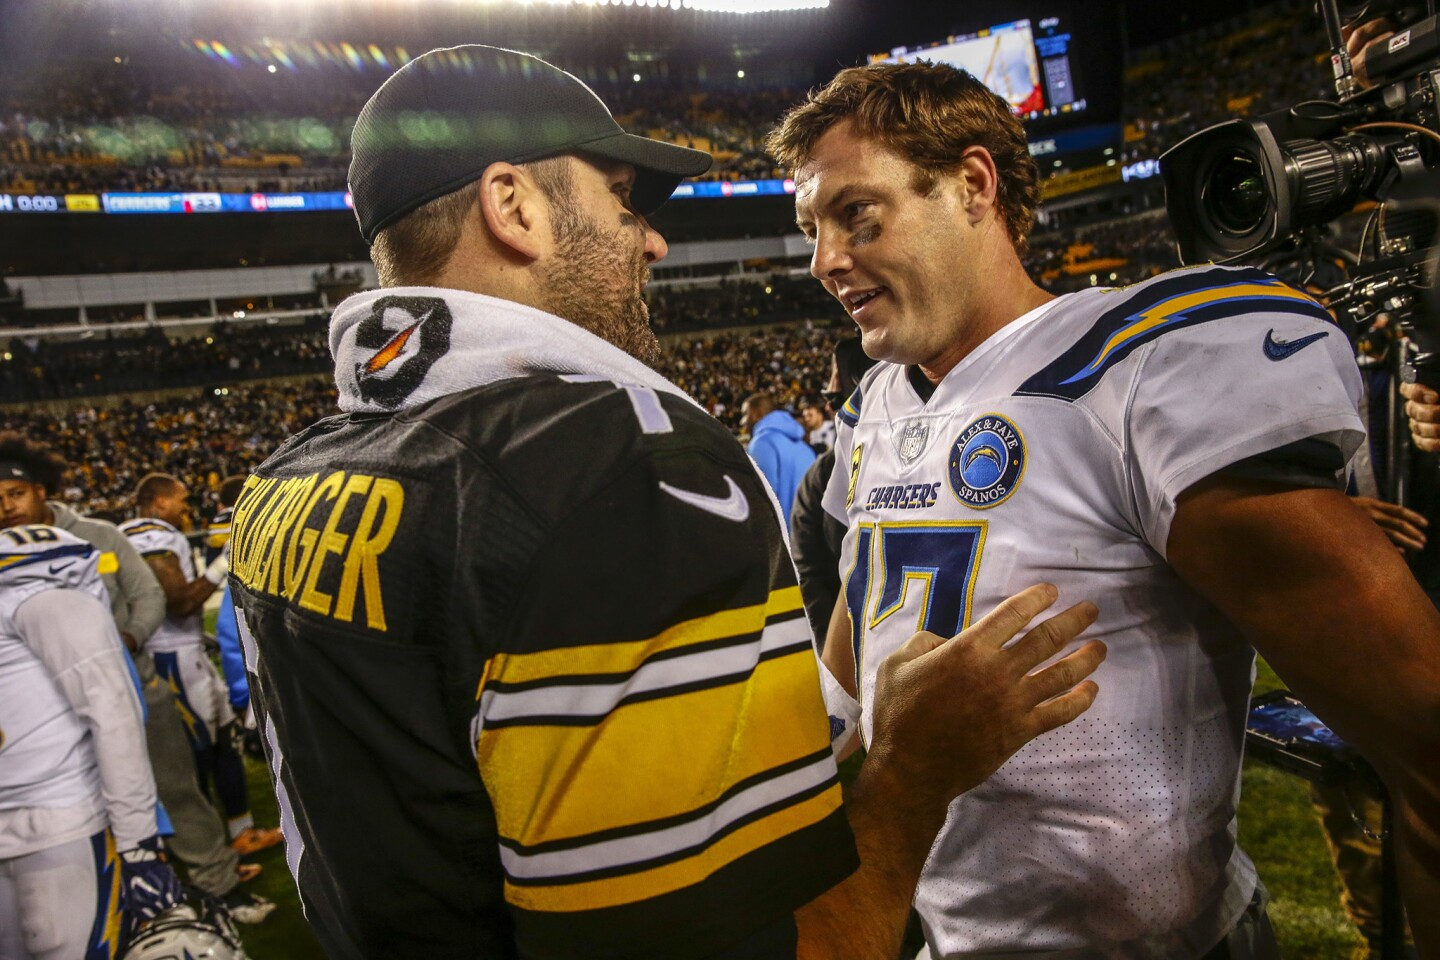 Ben Roehtlisberger and Philip Rivers meet up at the 50-yard line after a 33-30 win.